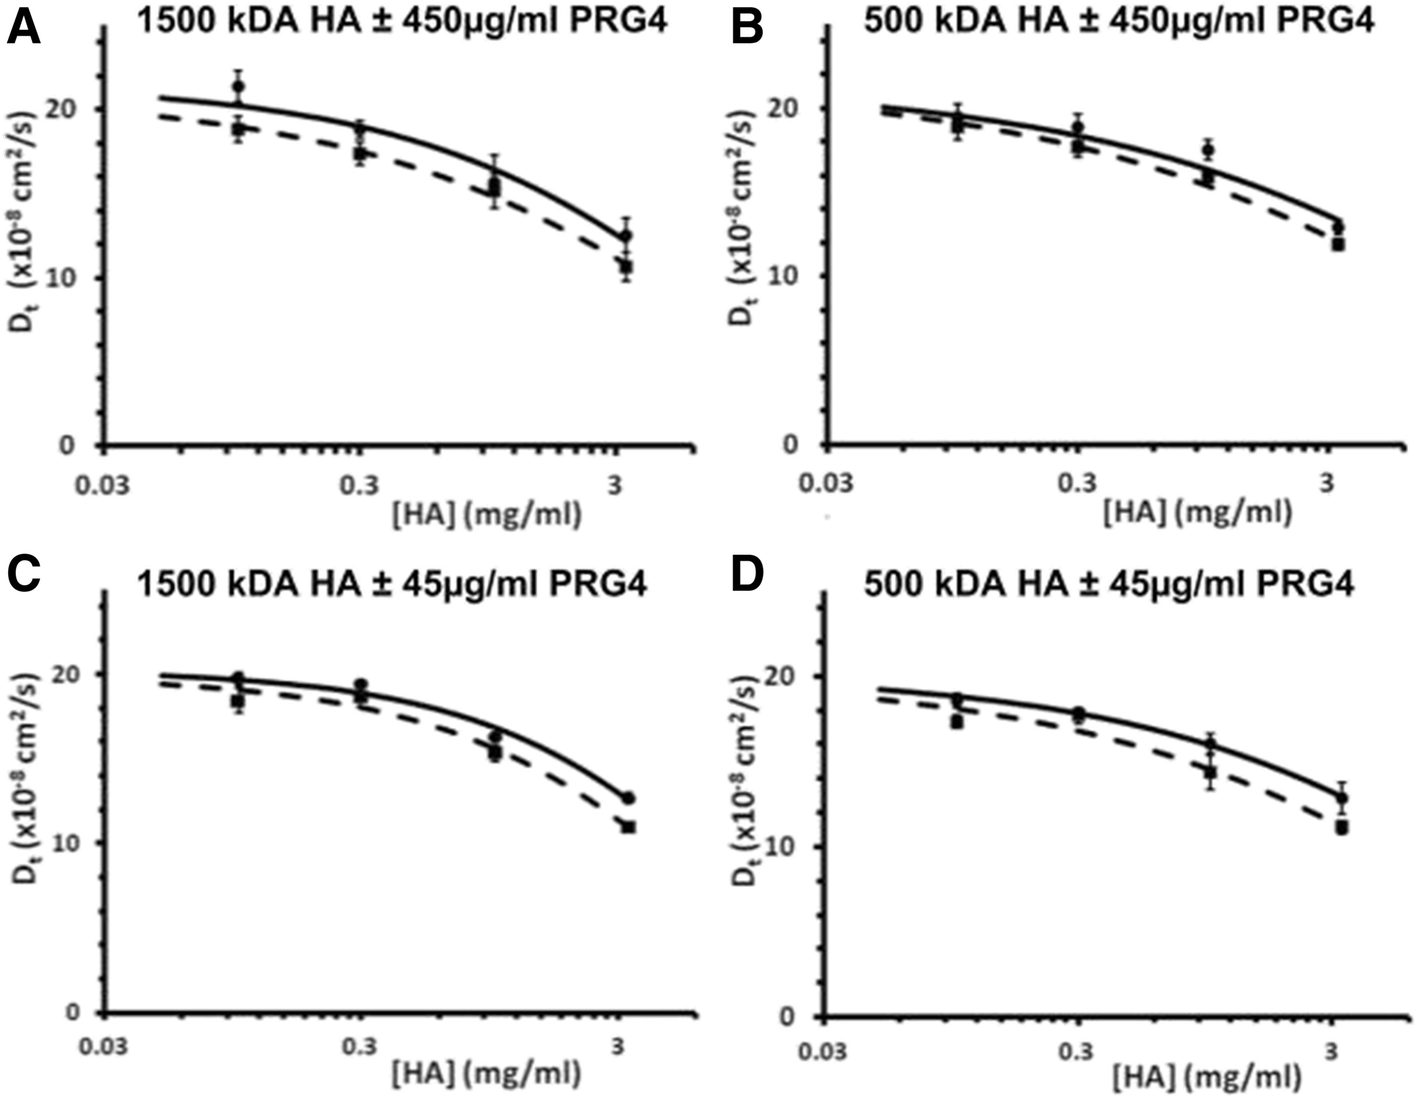 Investigating the effect of proteoglycan 4 on hyaluronan